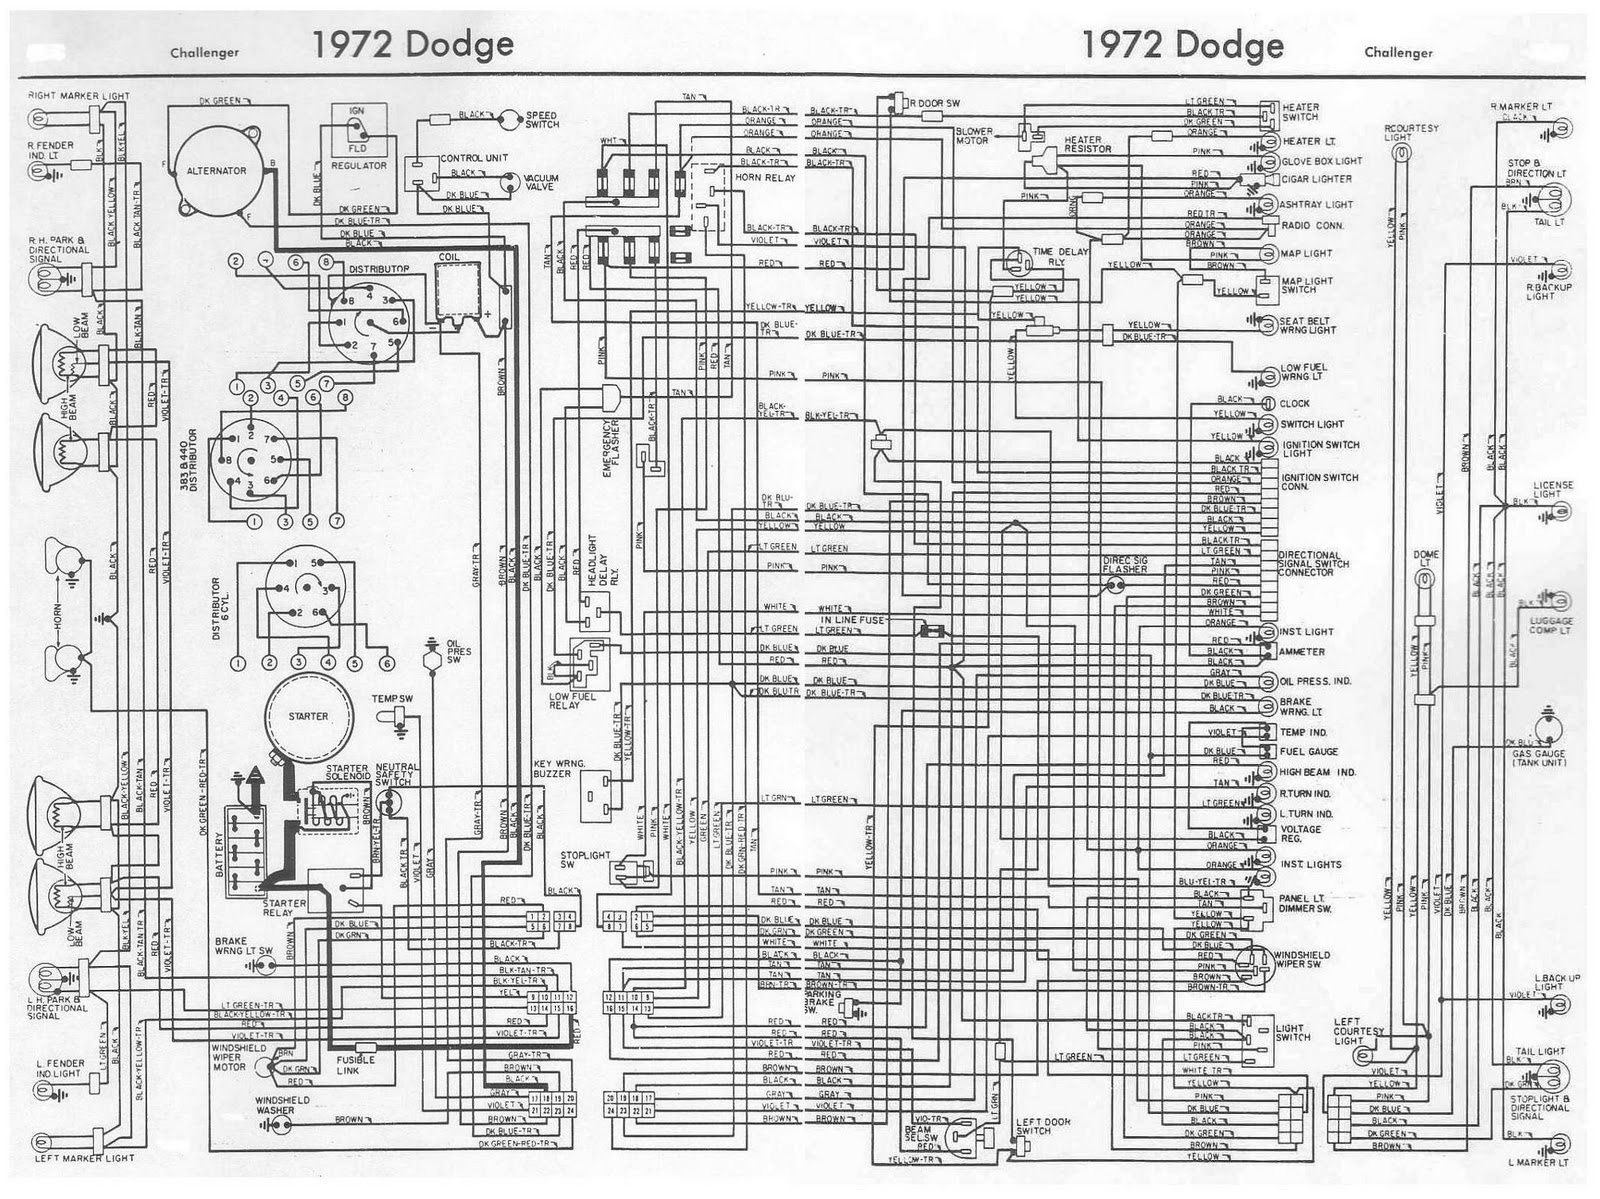 Wiring Diagram For Dodge Challenger 70 Schematics 1992 Pontiac Grand Am Engine Schematic 1970 Detailed M37